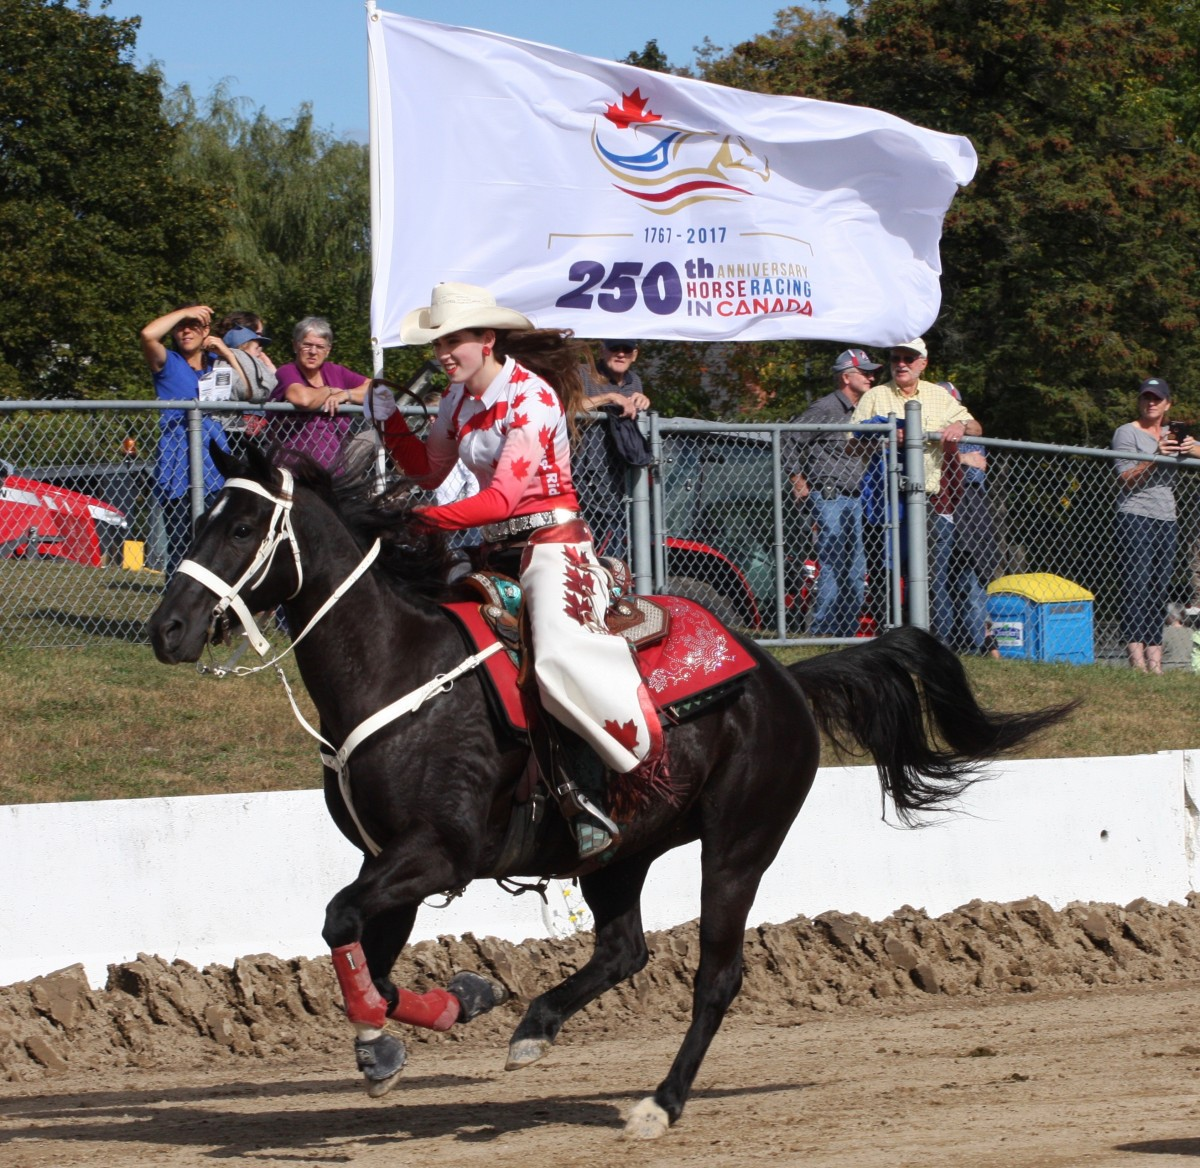 Kylie, an Erin resident who is a member of the Canadian Cowgirls sprinted with the 250th Anniversary of Horse Racing in Canada flag down a portion of the old Erin Fair Racetrack at Erin Fair Monday, Oct 9 as part of the 250 Commemorative Mile relay.